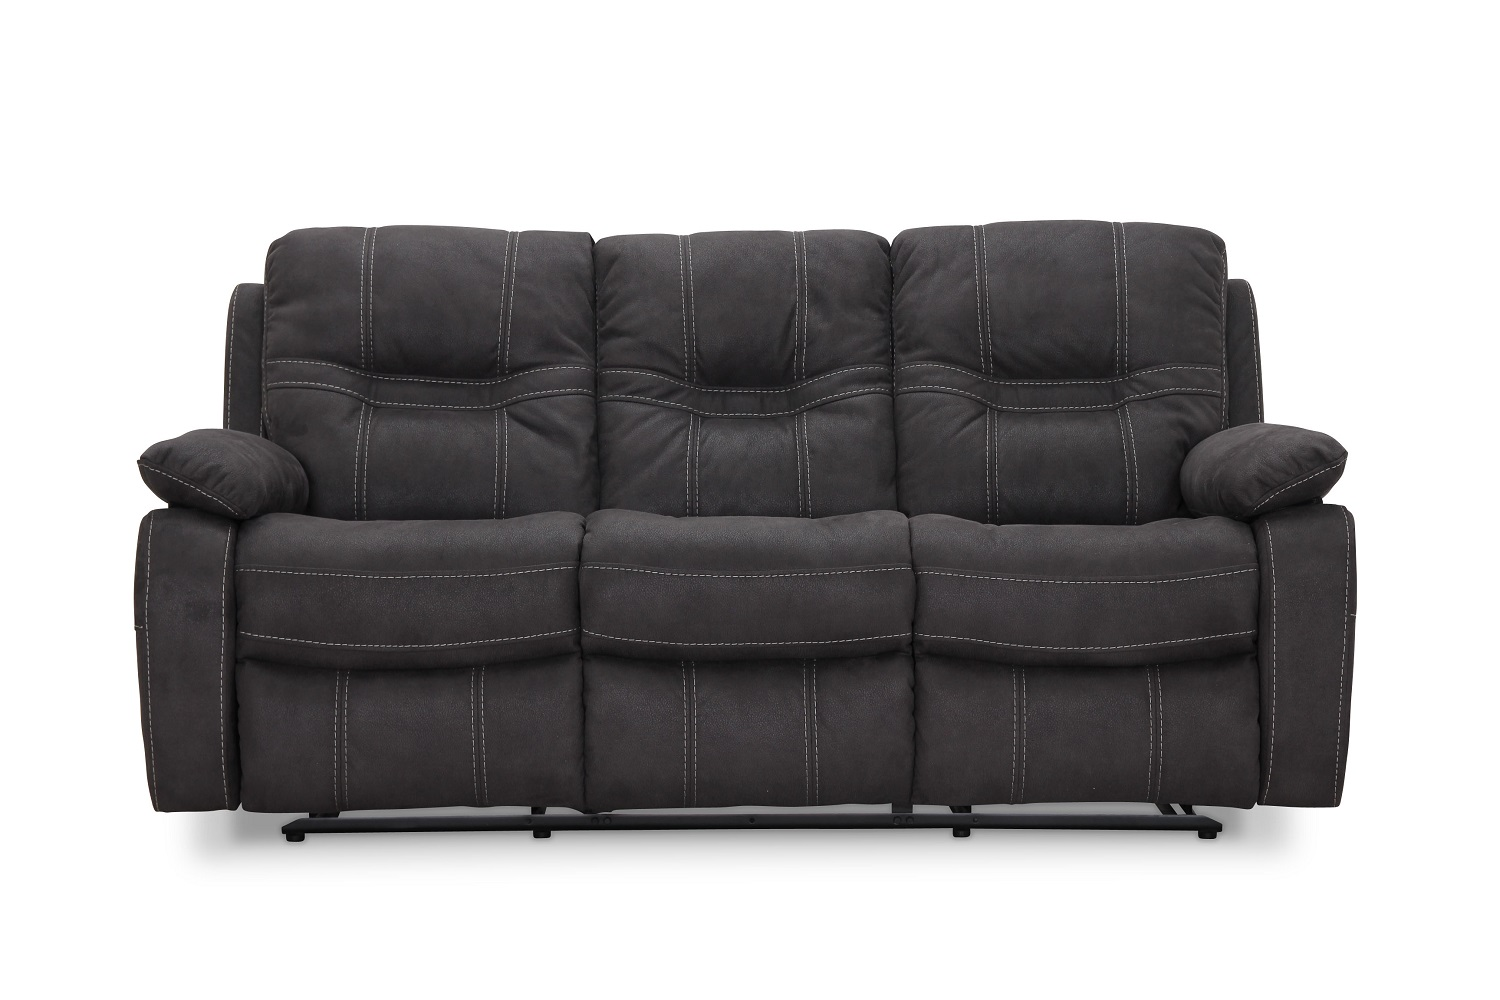 Image of   HAGA Detroit 3 pers. sofa - grå ruskindslook, m. recliner funktion